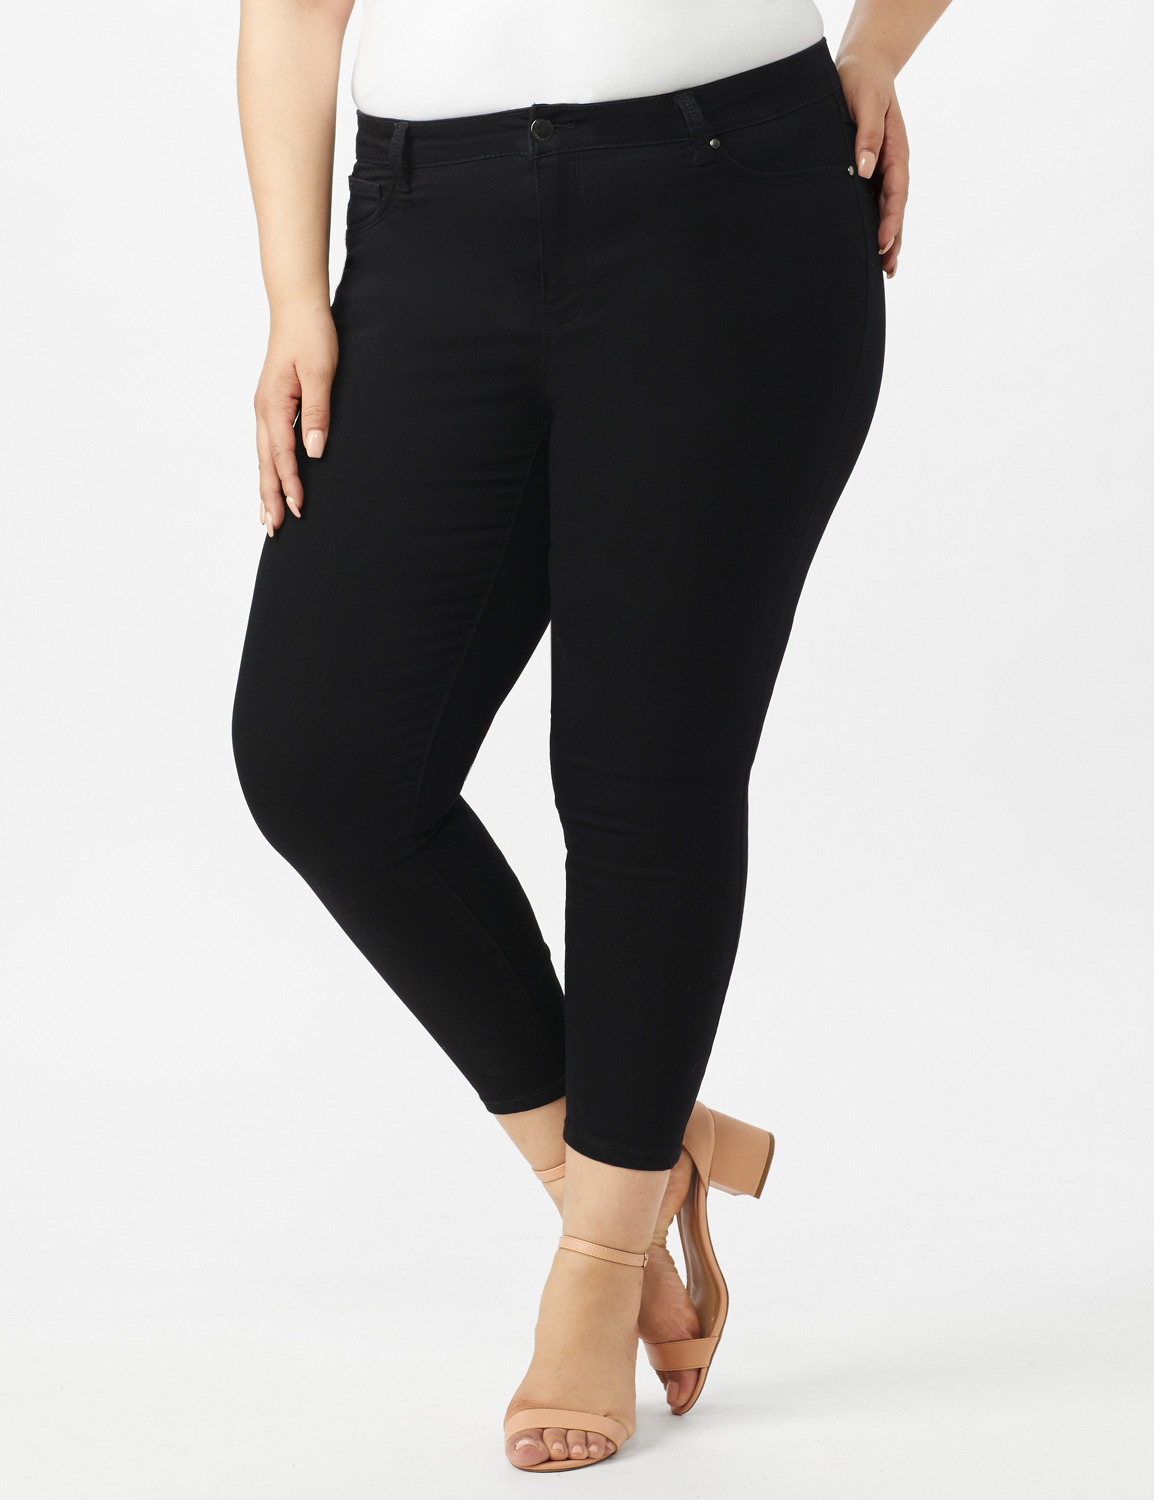 5 Pocket Skinny Ankle Length Jeans -Black - Front